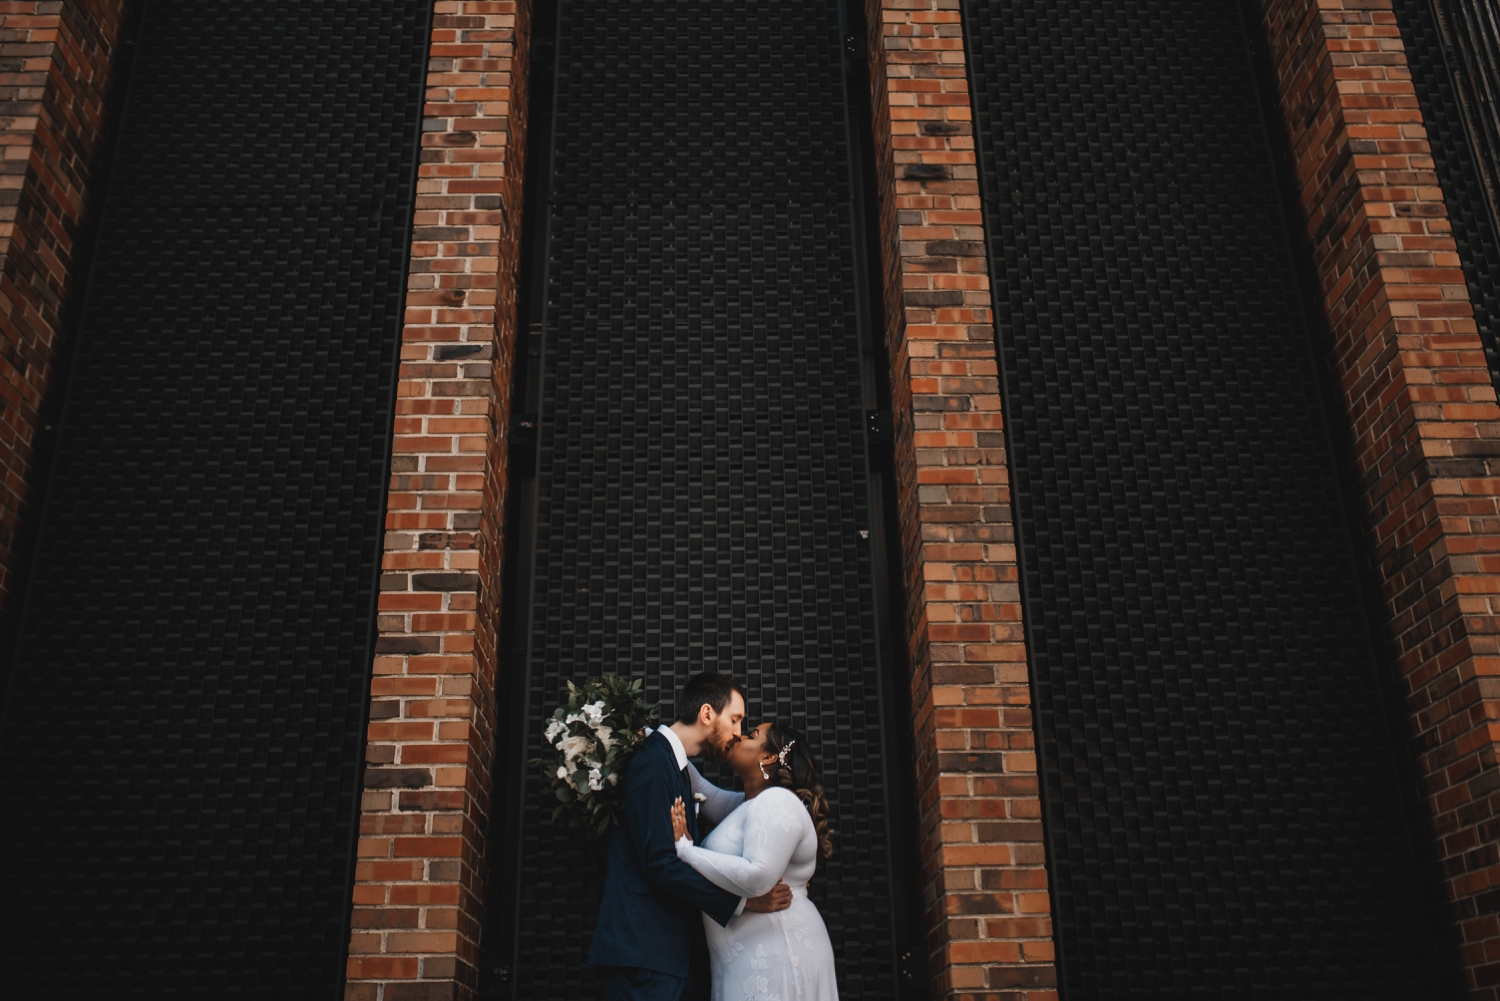 Chicago Elopement photographer - The Adamkovi, bride and groom